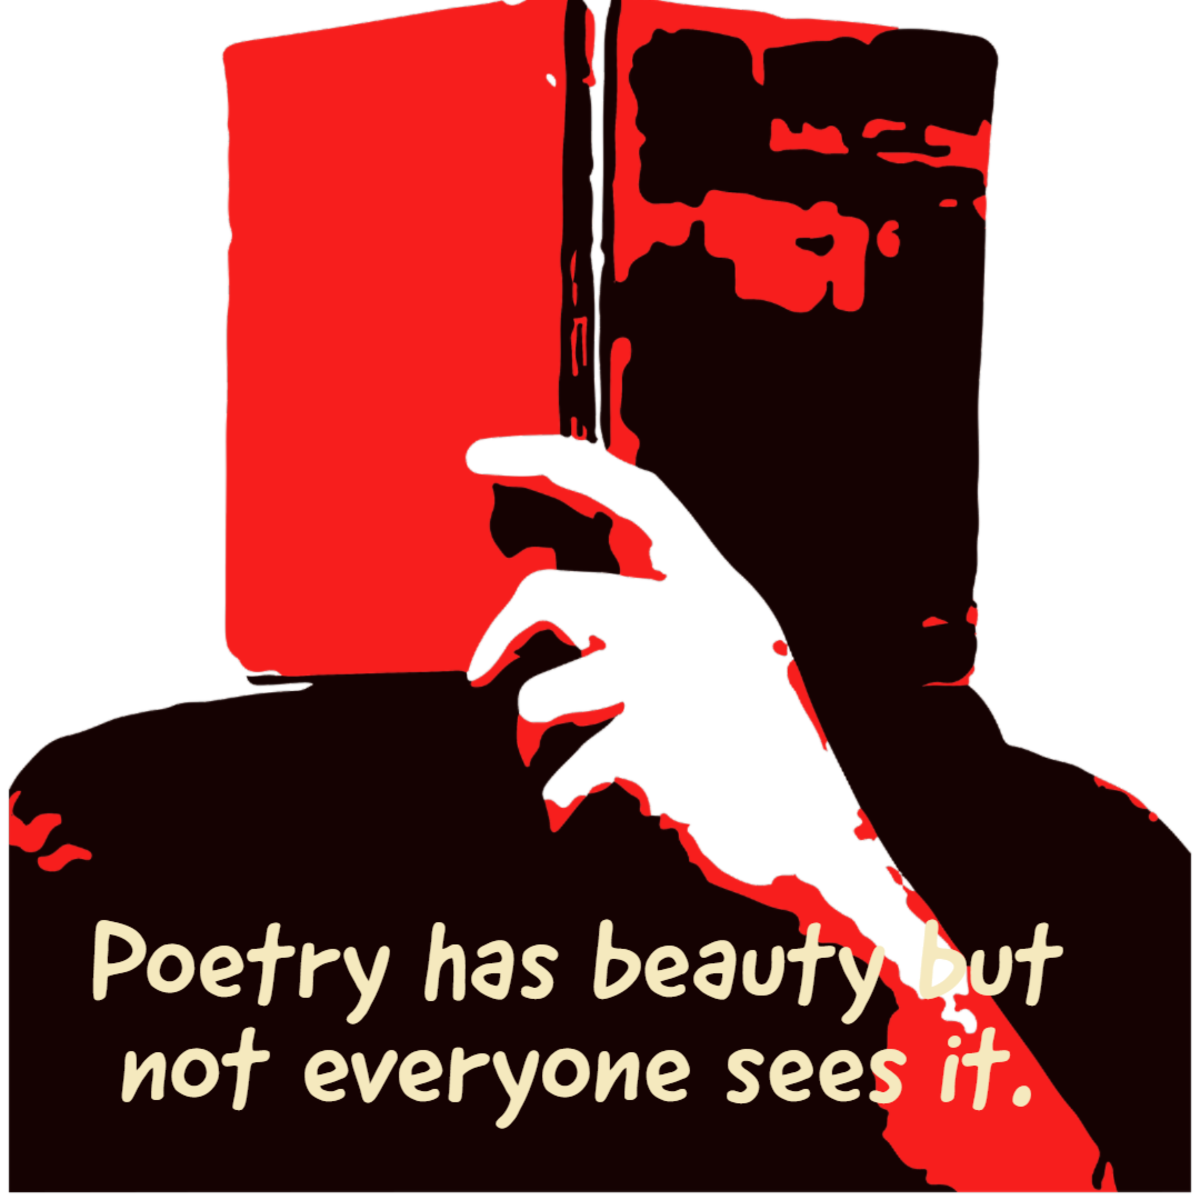 15 Easy Ways to Read and Understand Poetry